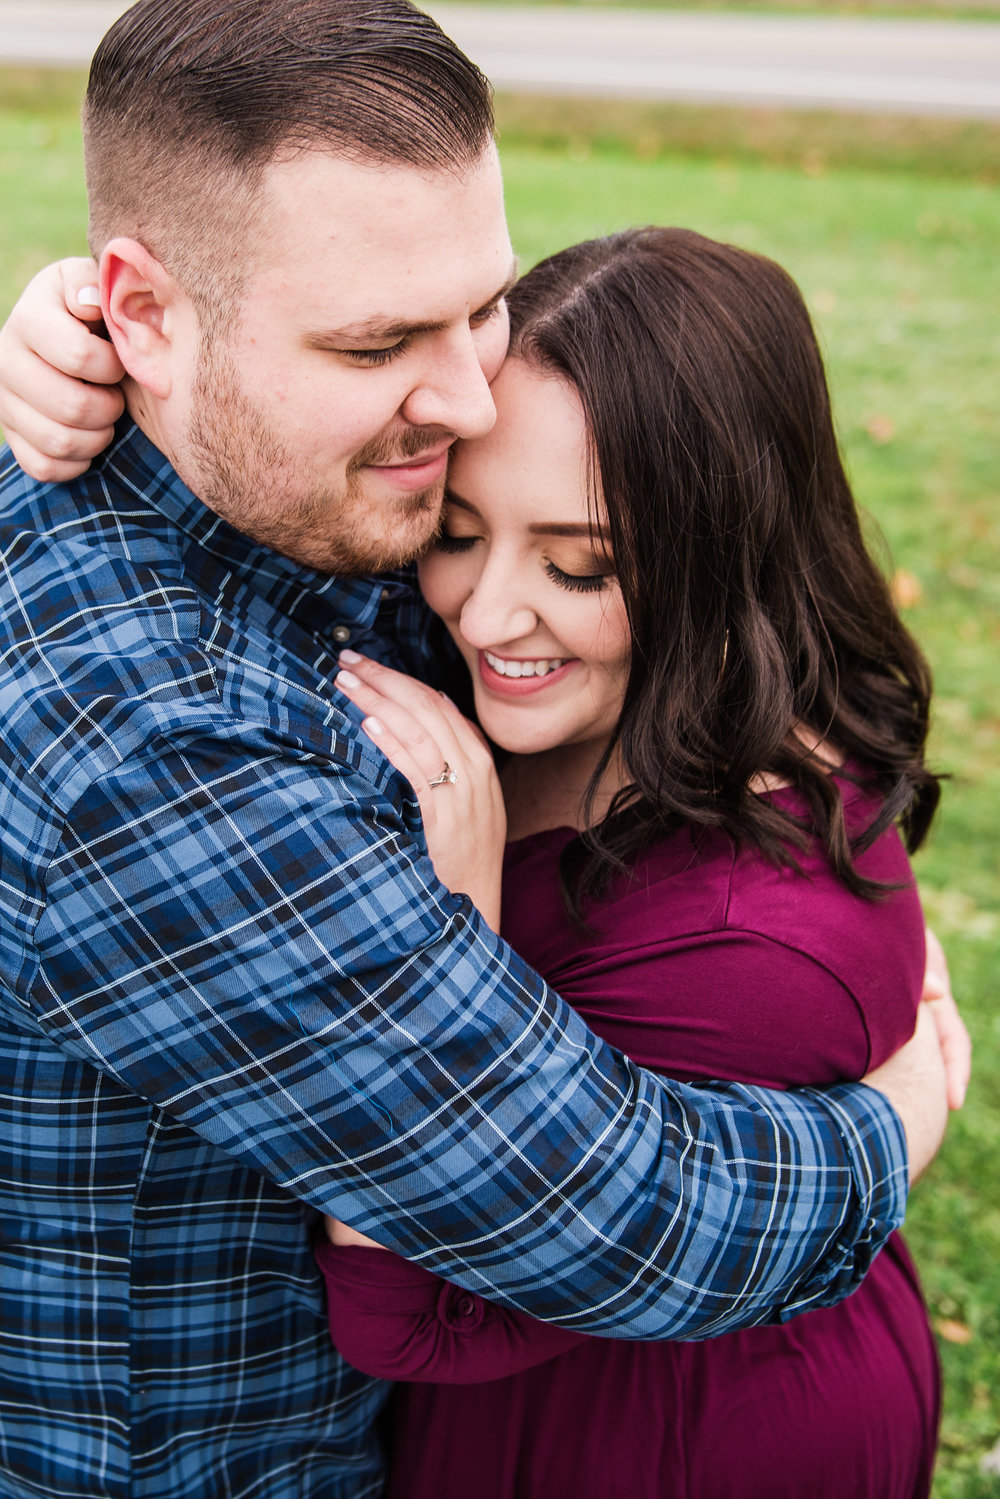 Tinker_Nature_Park_Rochester_Engagement_Session_JILL_STUDIO_Rochester_NY_Photographer_DSC_0579.jpg